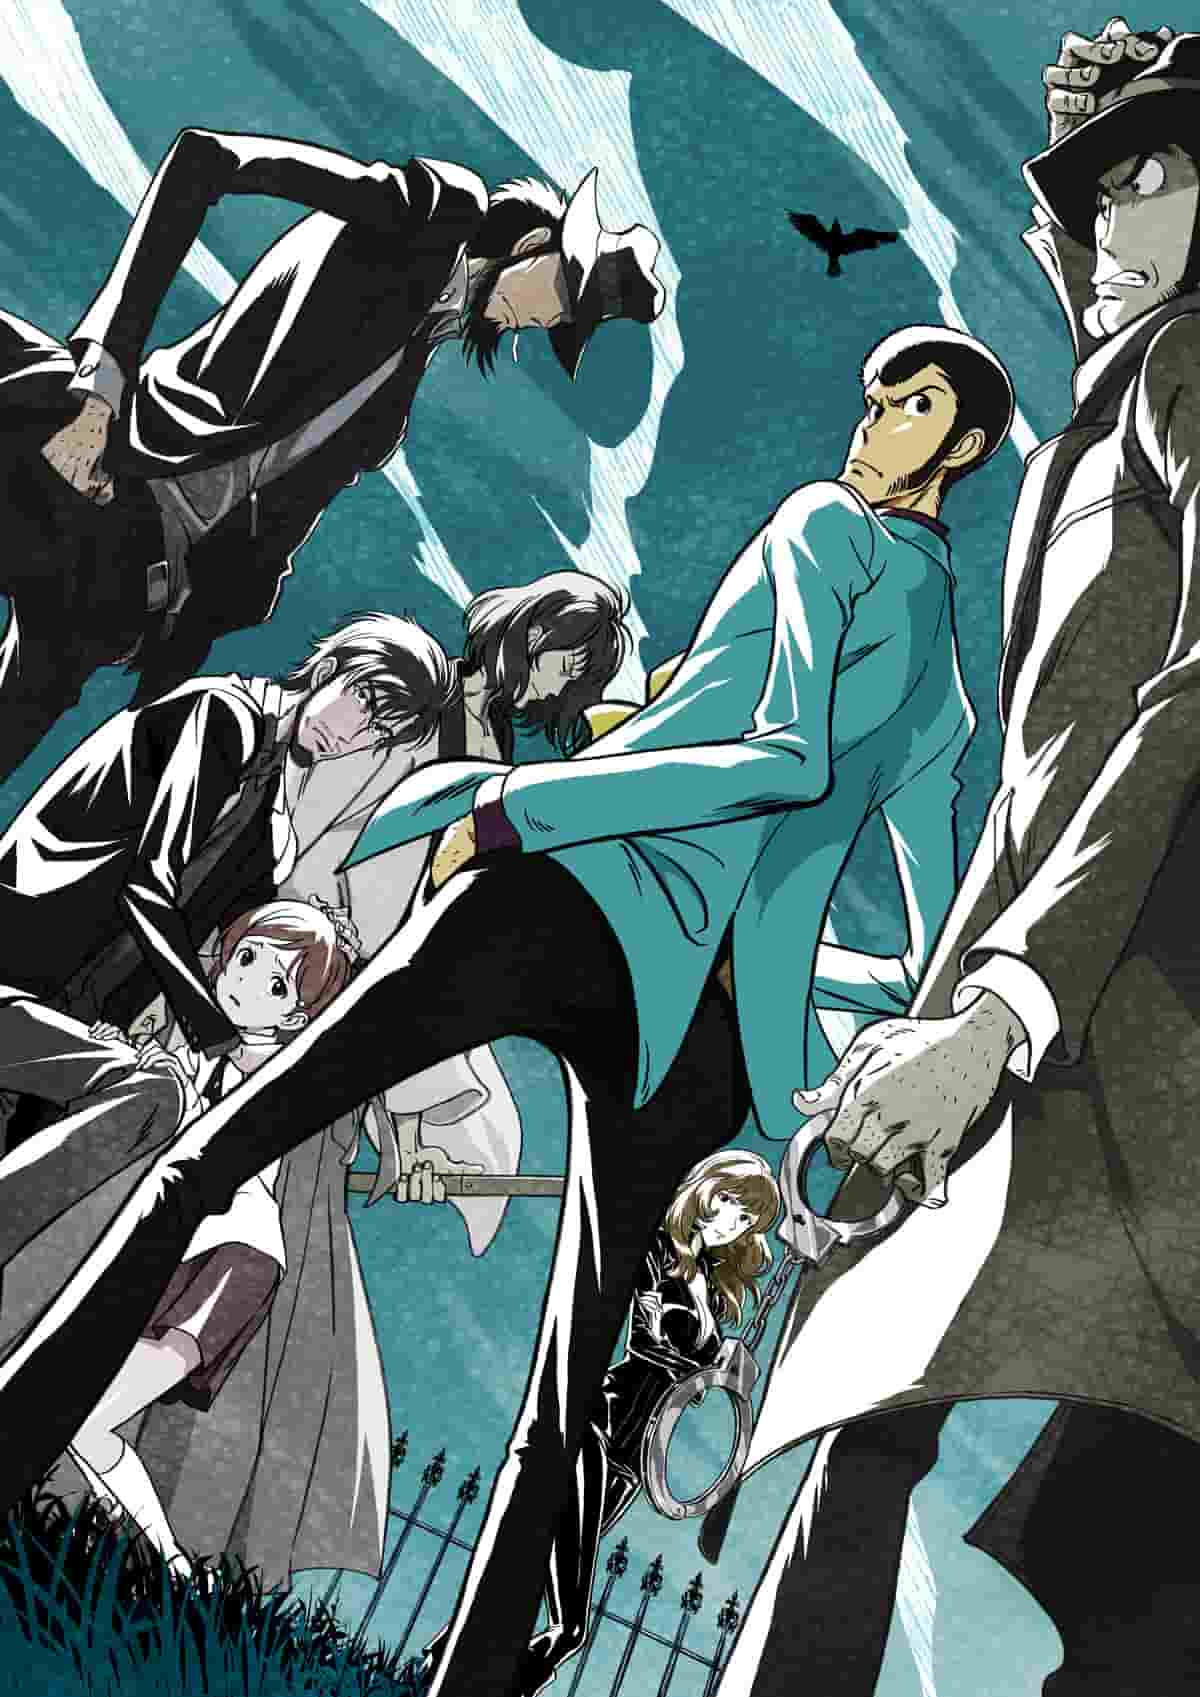 Lupin the Third PART 6